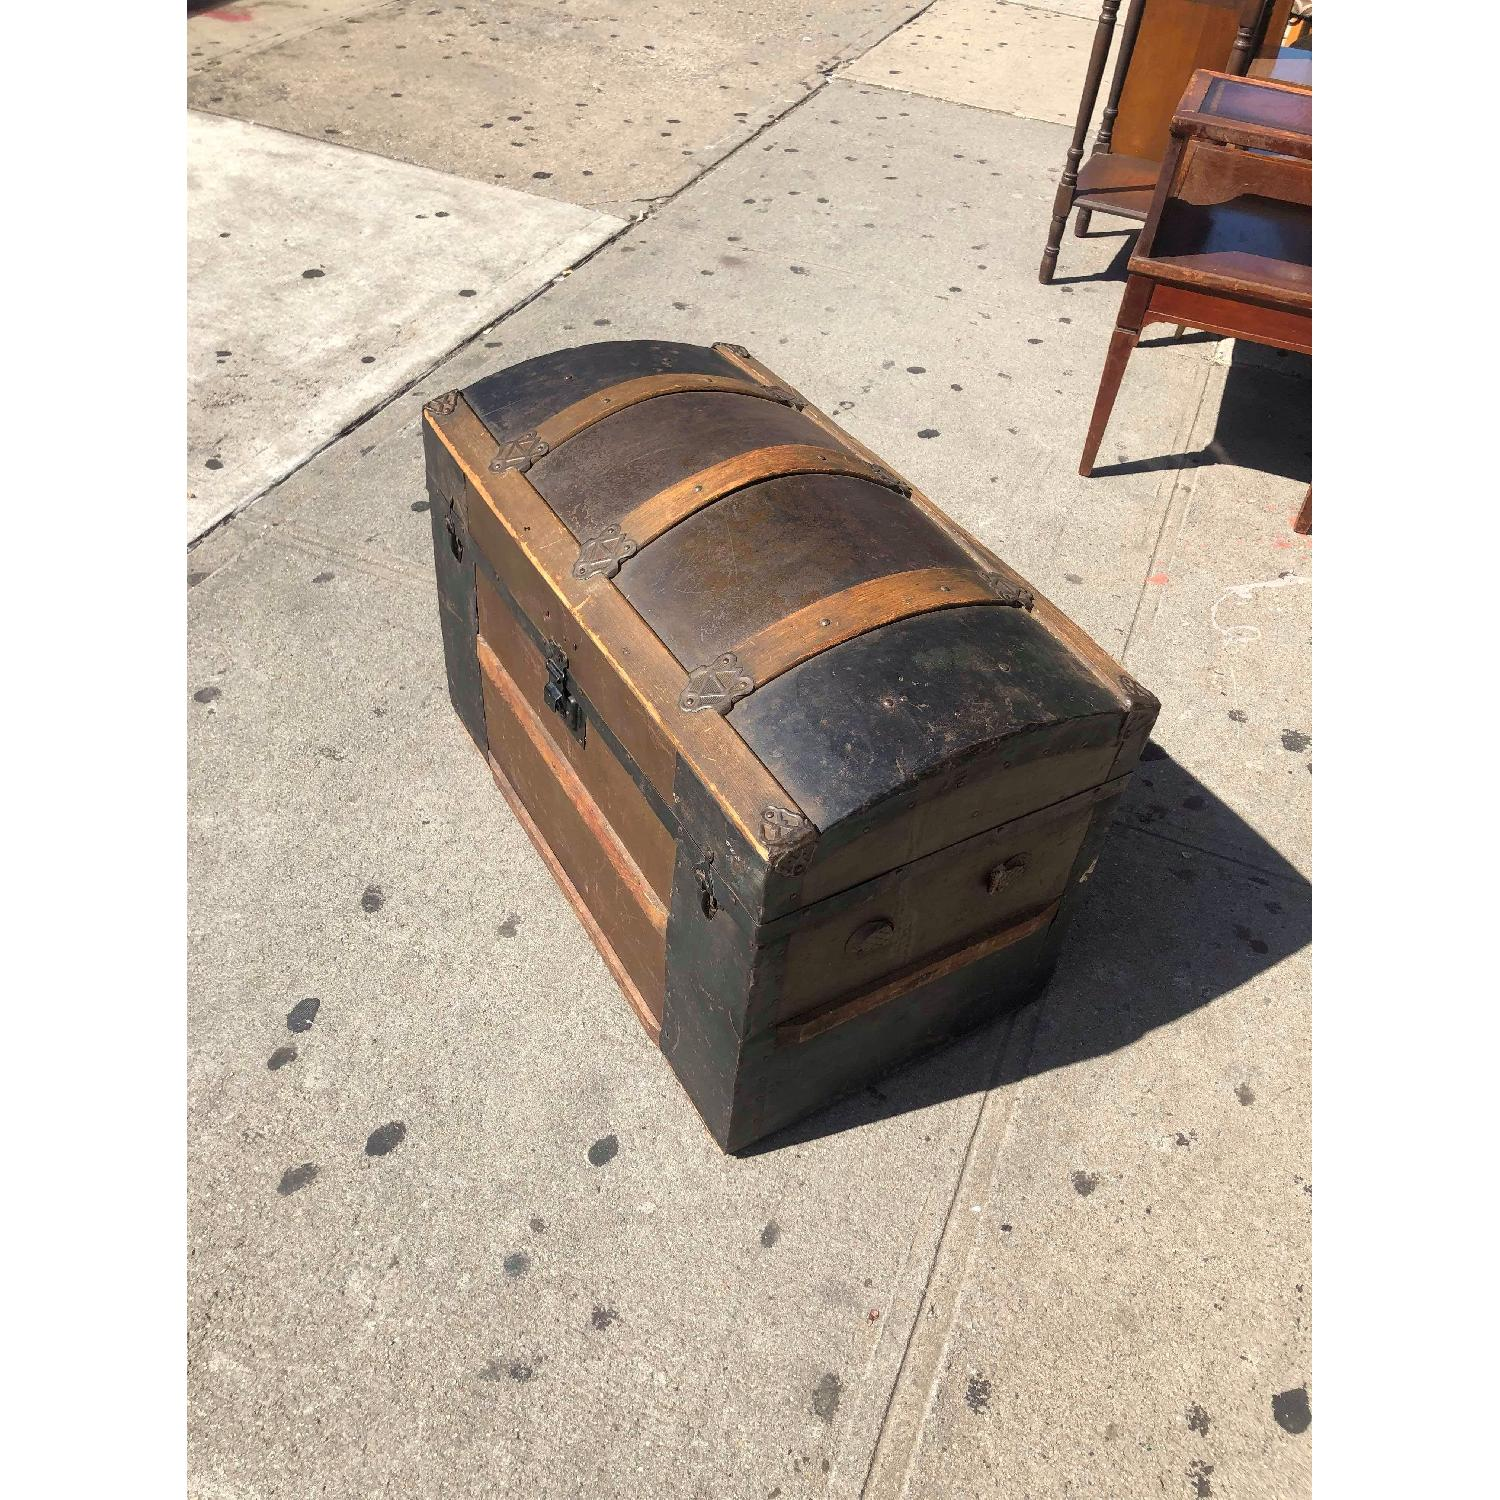 Antique 19th Century Dome Top Storage Trunk w/ Wheels - image-5